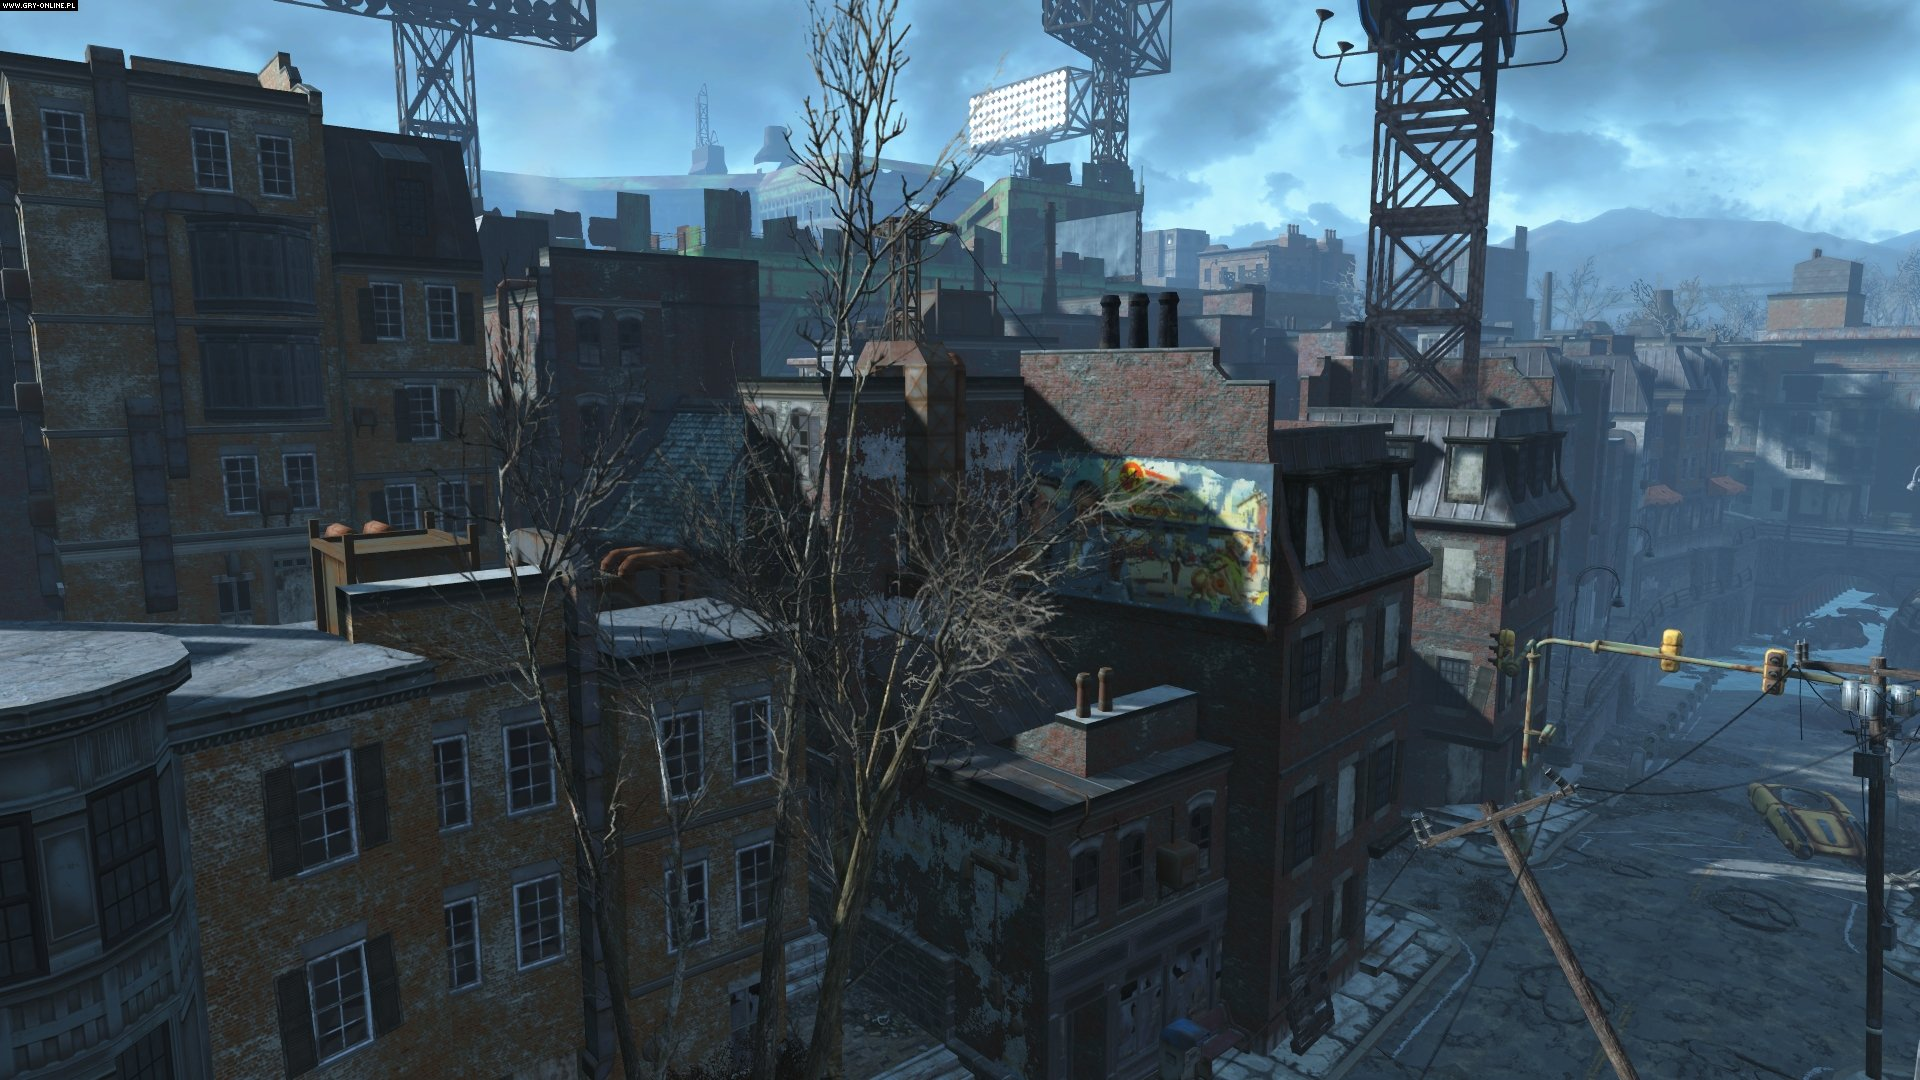 Fallout 4 PC Games Image 8/109, Bethesda Softworks